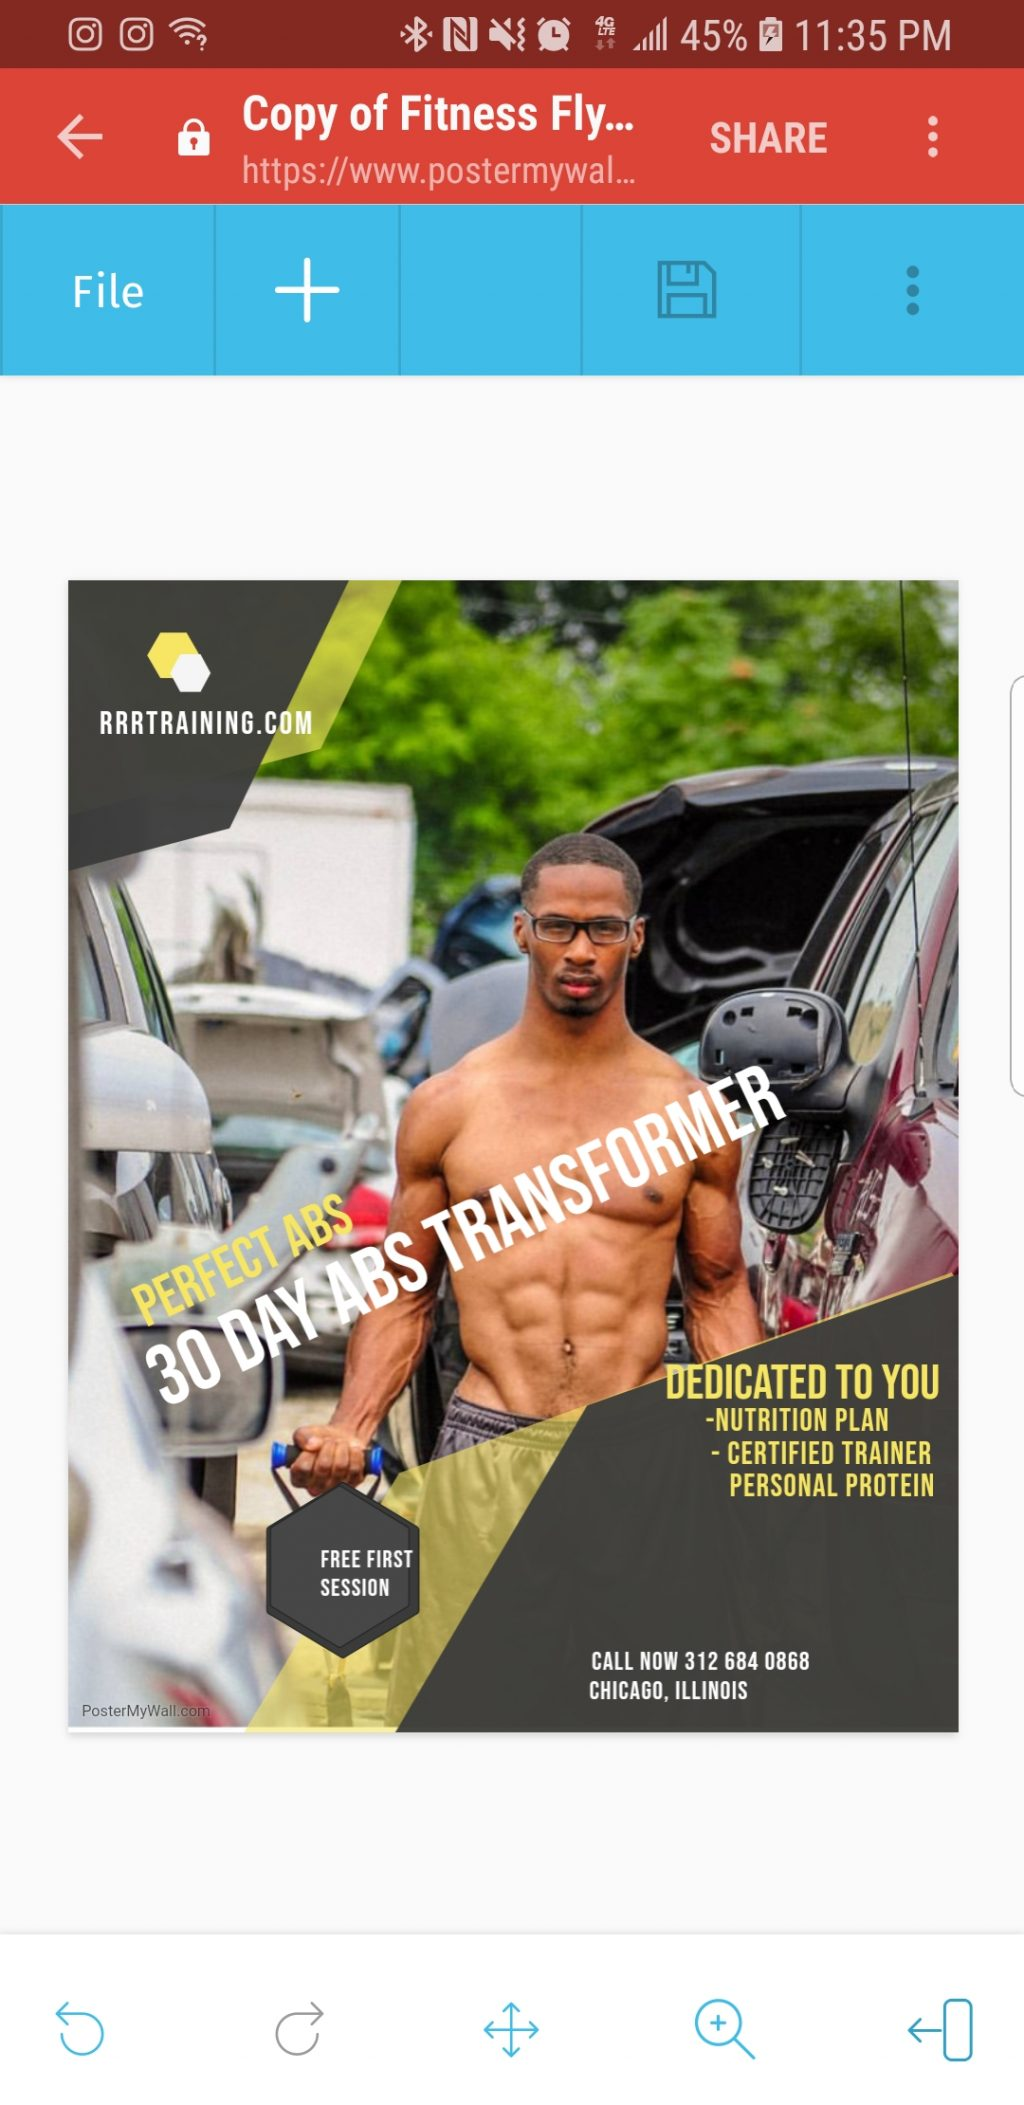 Personal Trainer Chicago, Illinois - Ray Richardson